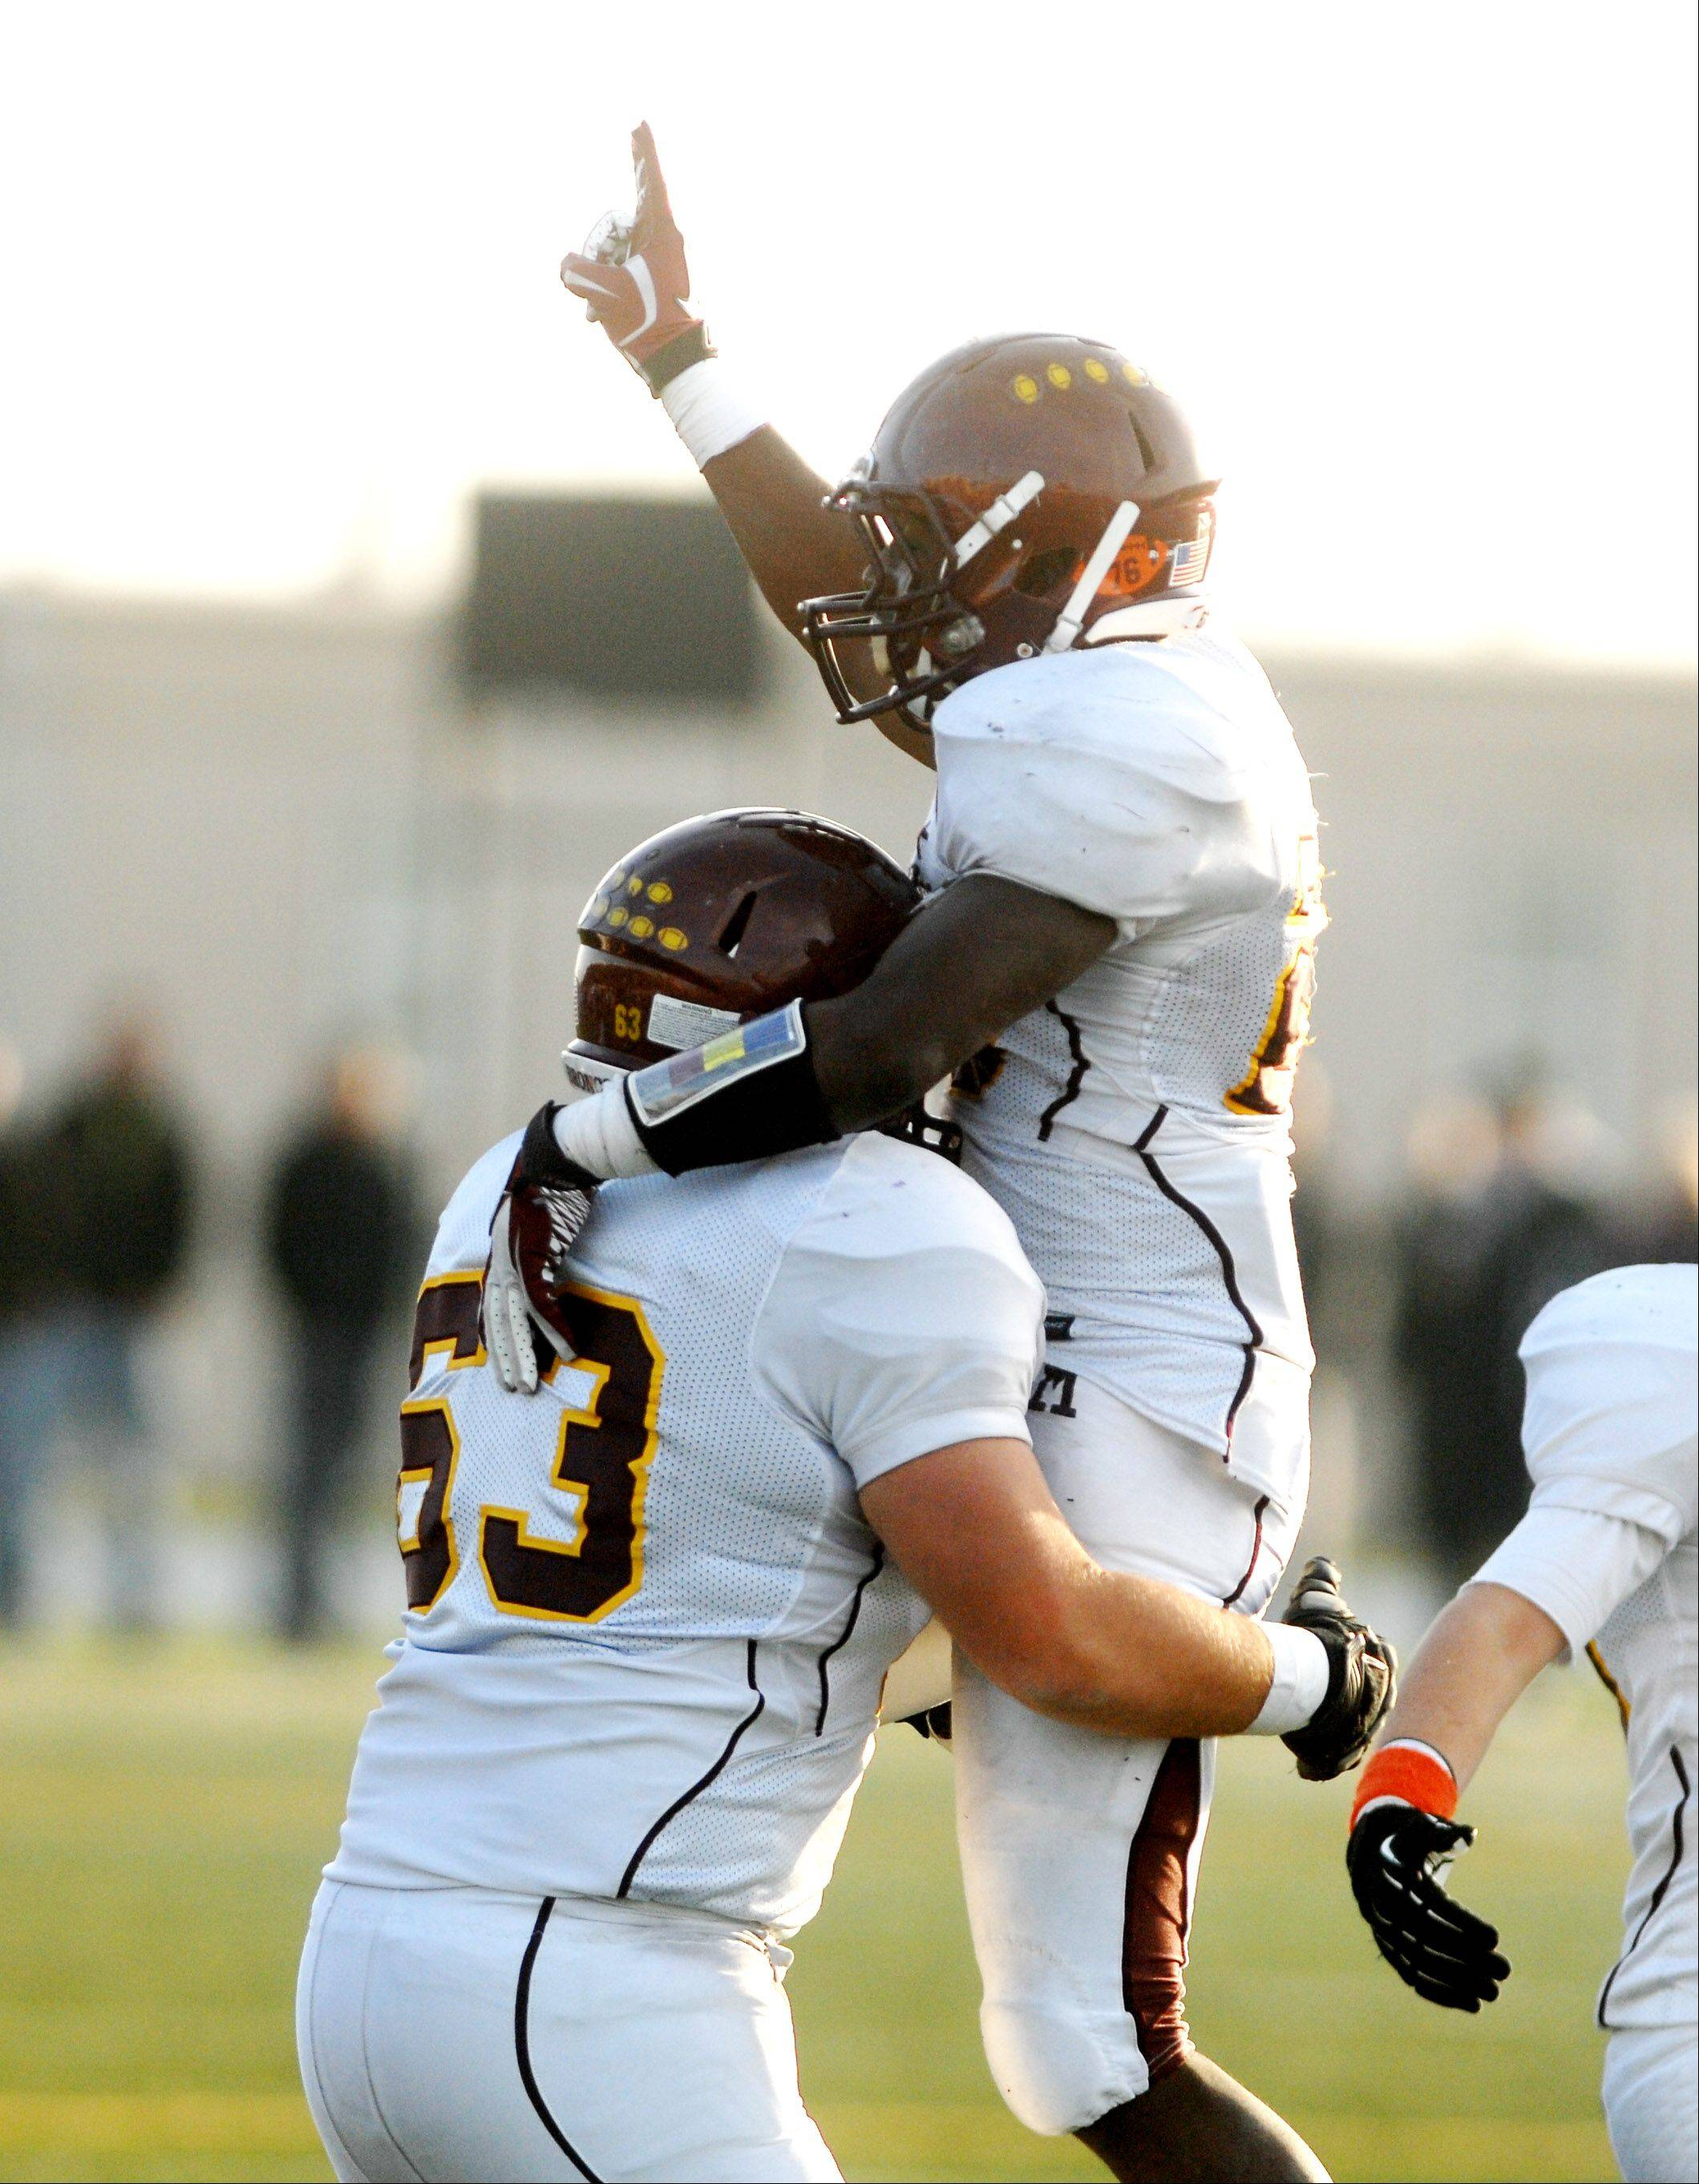 Michael Richmond holds Dimitri Taylor as they celebrate a score against Joliet Catholic in the Class 5A semifinals last weekend. The Broncos are after a fourth straight state title in Champaign.